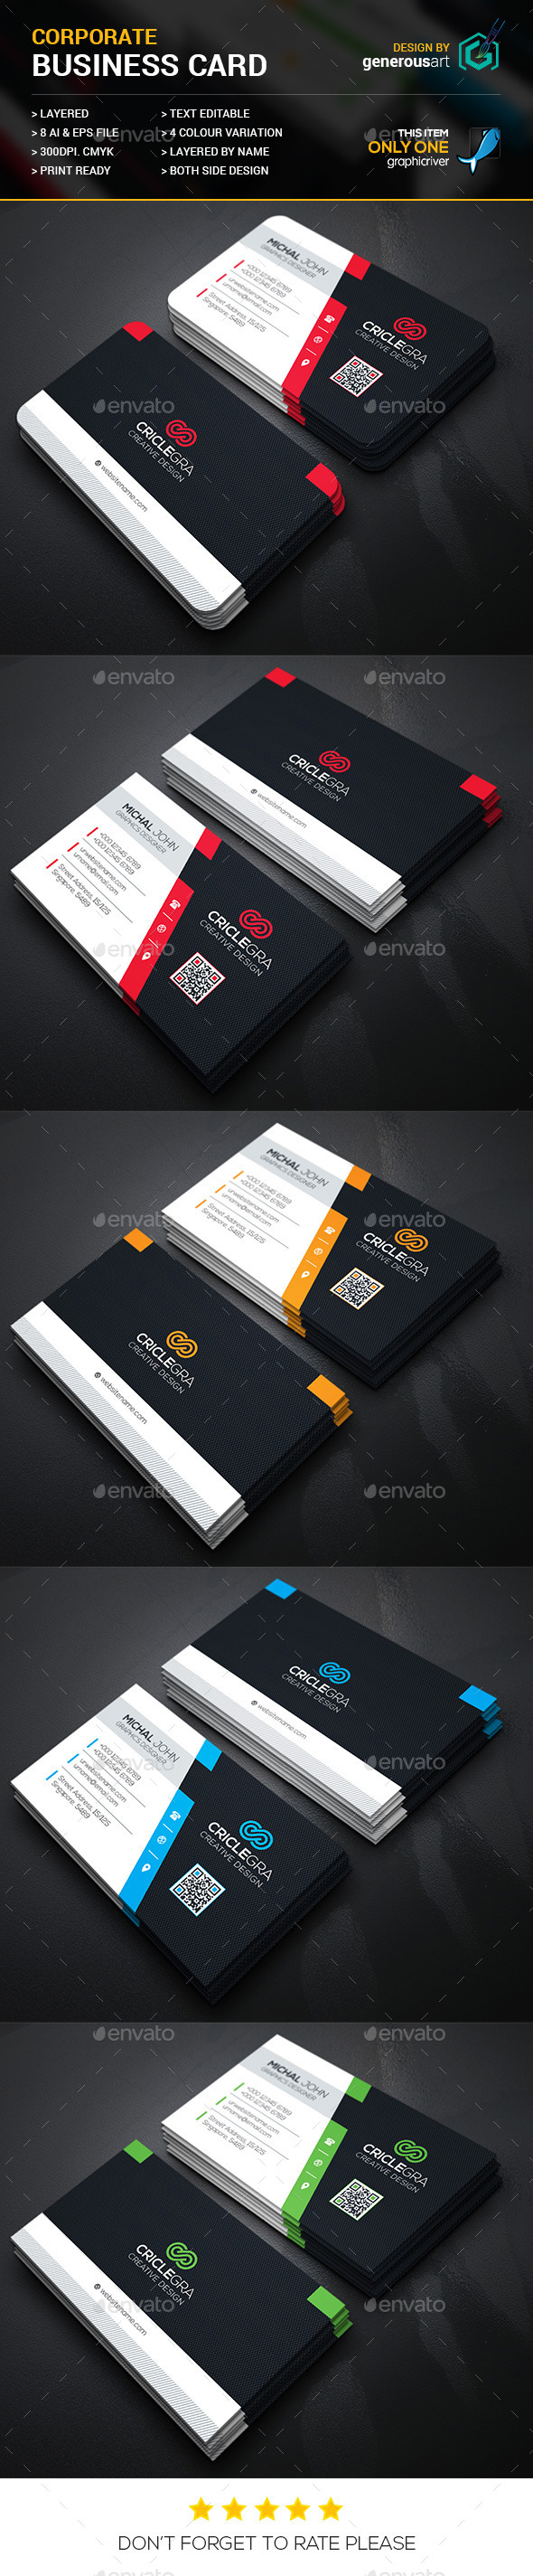 Criclegra Corporate Business Cards 2